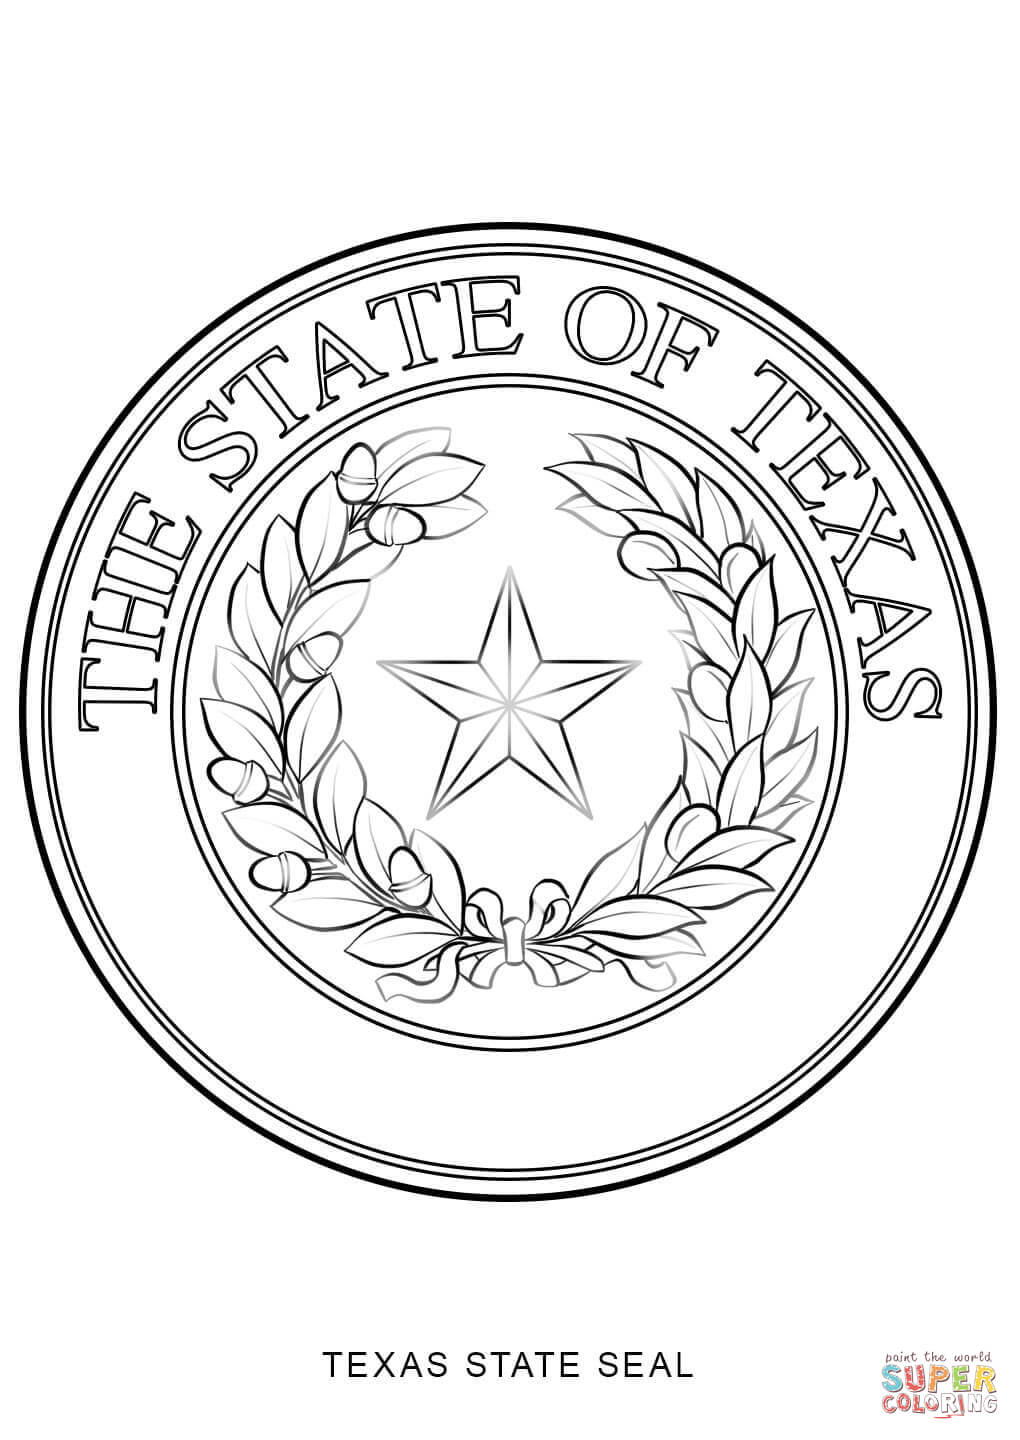 texas state seal coloring page texas state seal coloring page bing images texas texas coloring state seal page